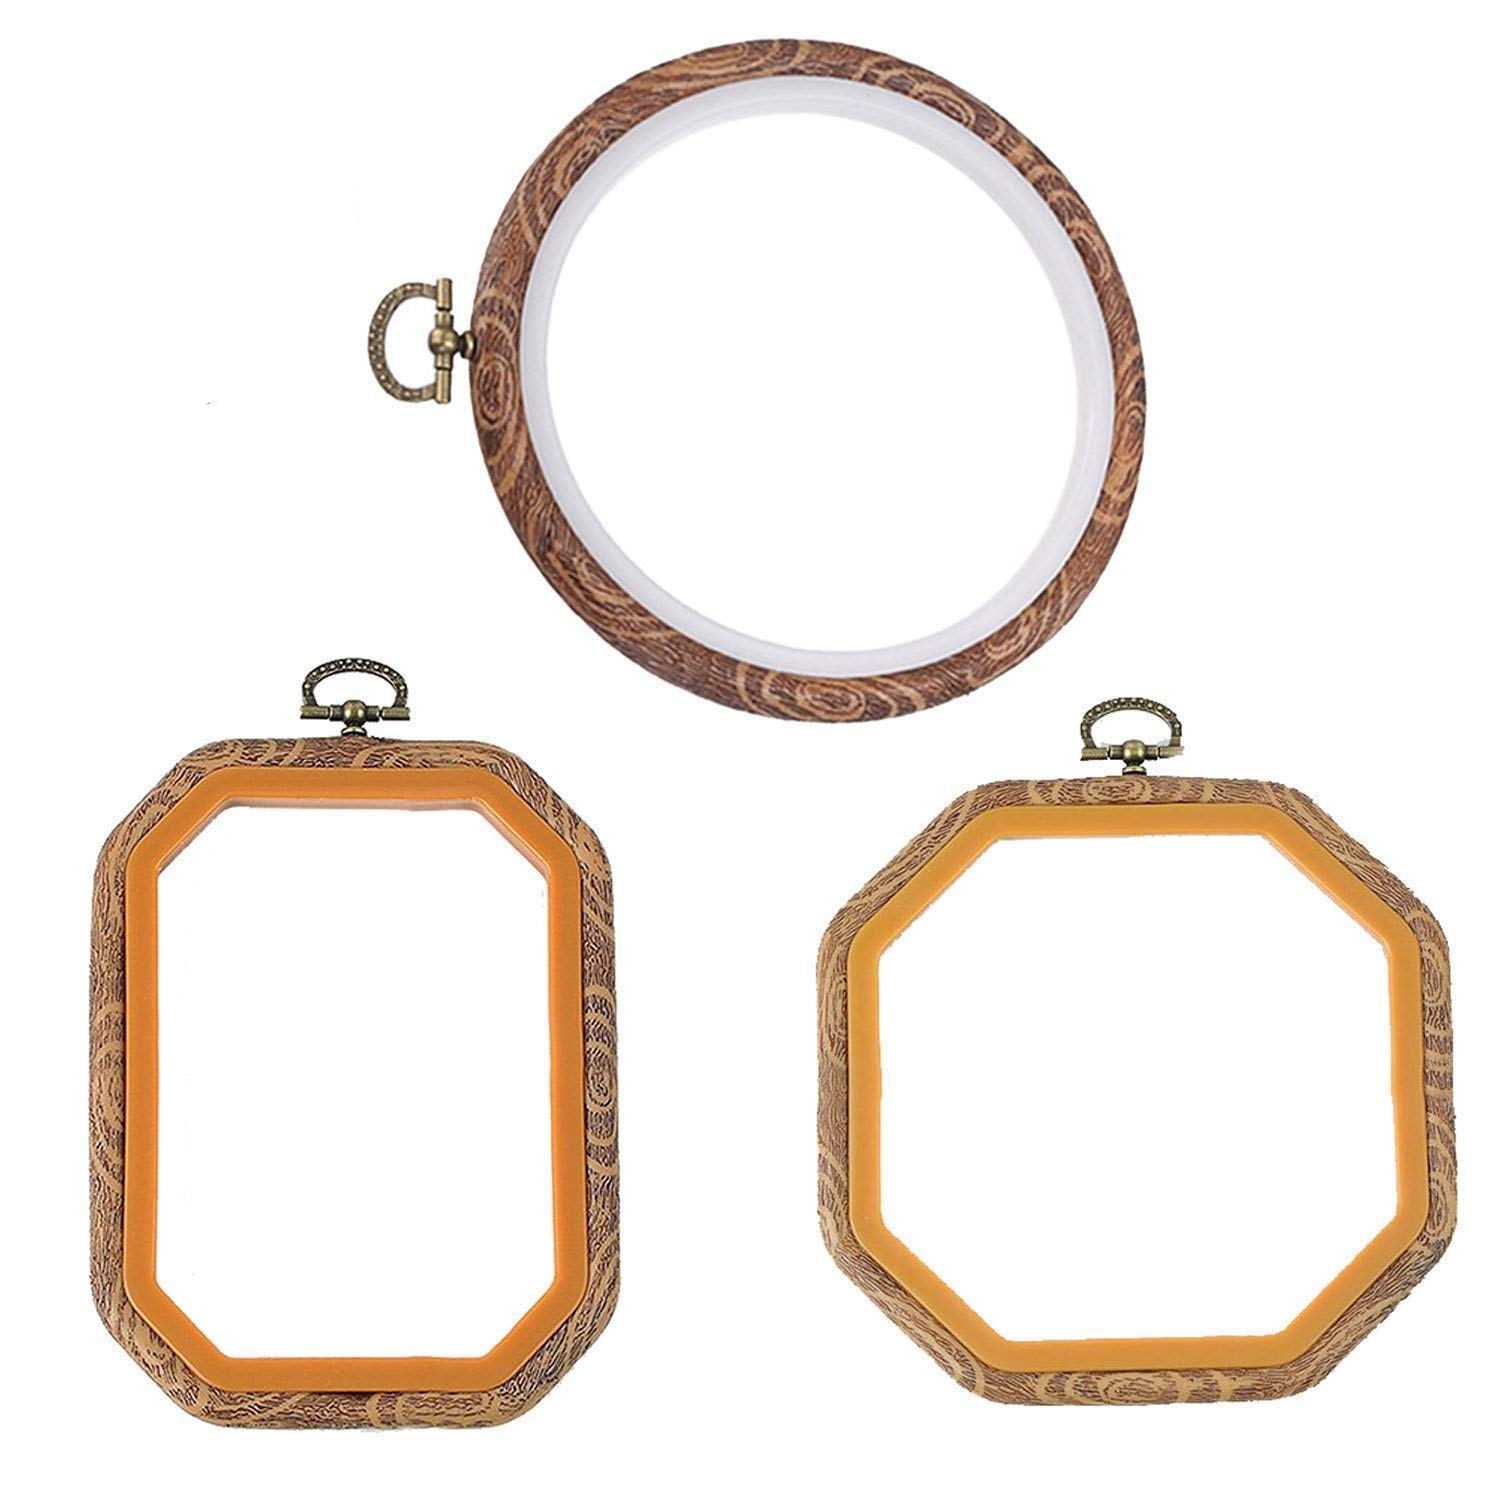 HoLeis 3 PCS Embroidery Hoops Cross Stitch Hoop Bulk Imitated Wood Embroidery Sets (1 Circle+1 Octagon+1 Rectangle)